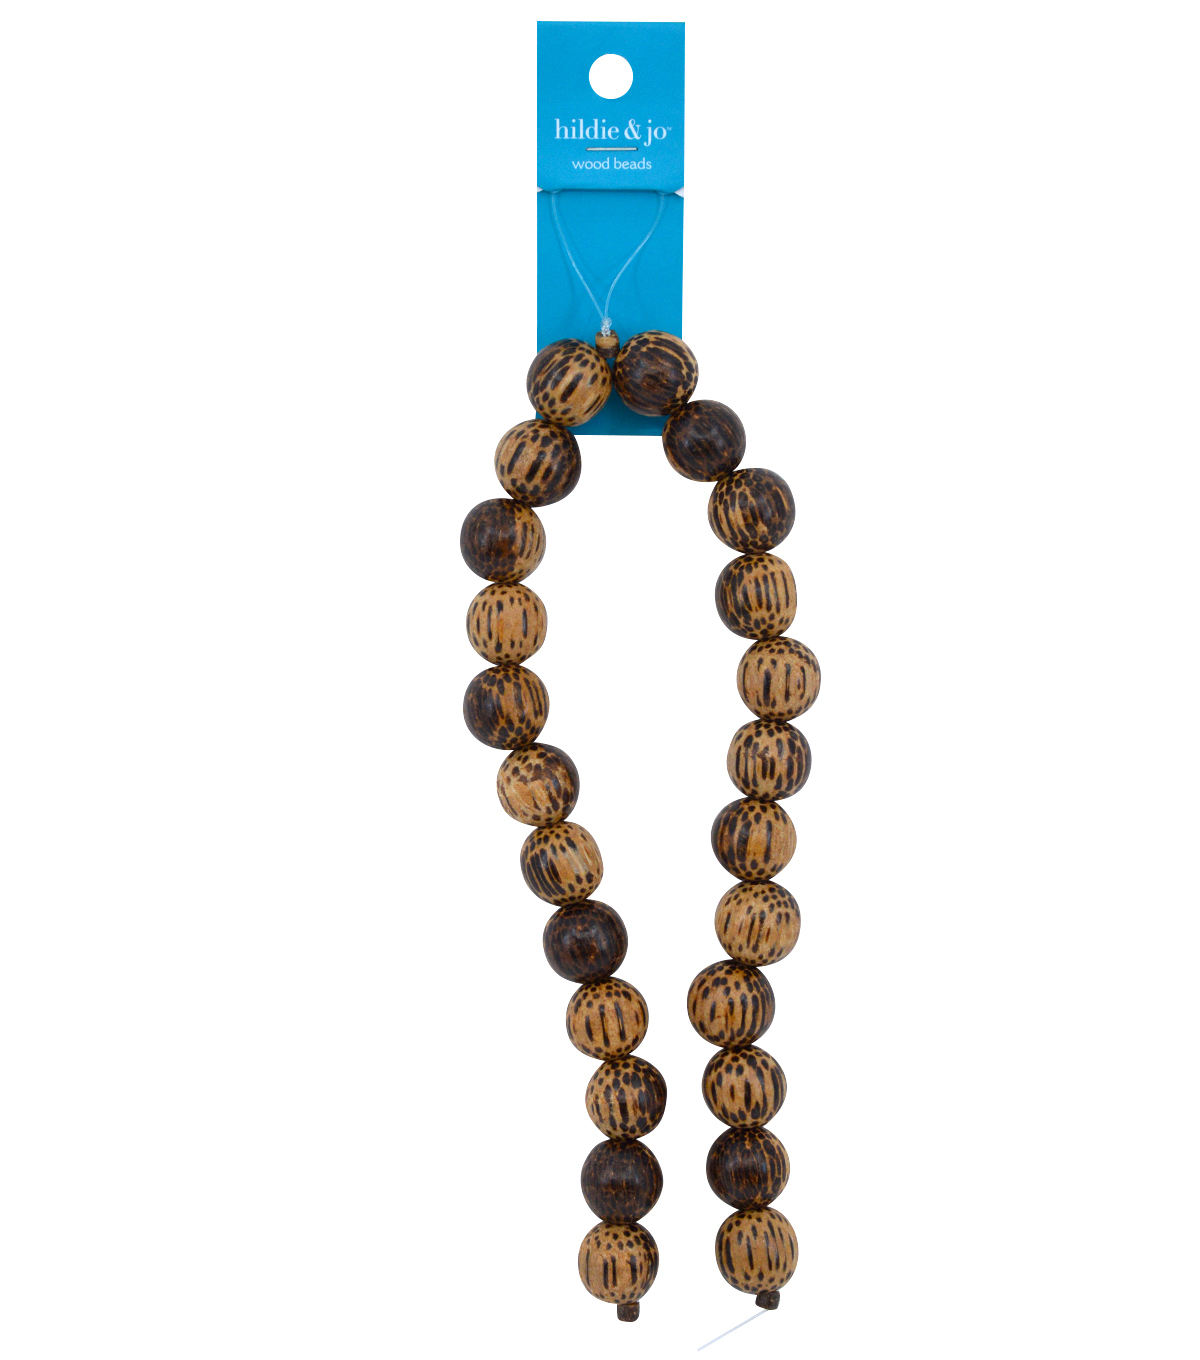 Blue Moon Strung Coco Wood Beads,Round,Brown w/Black